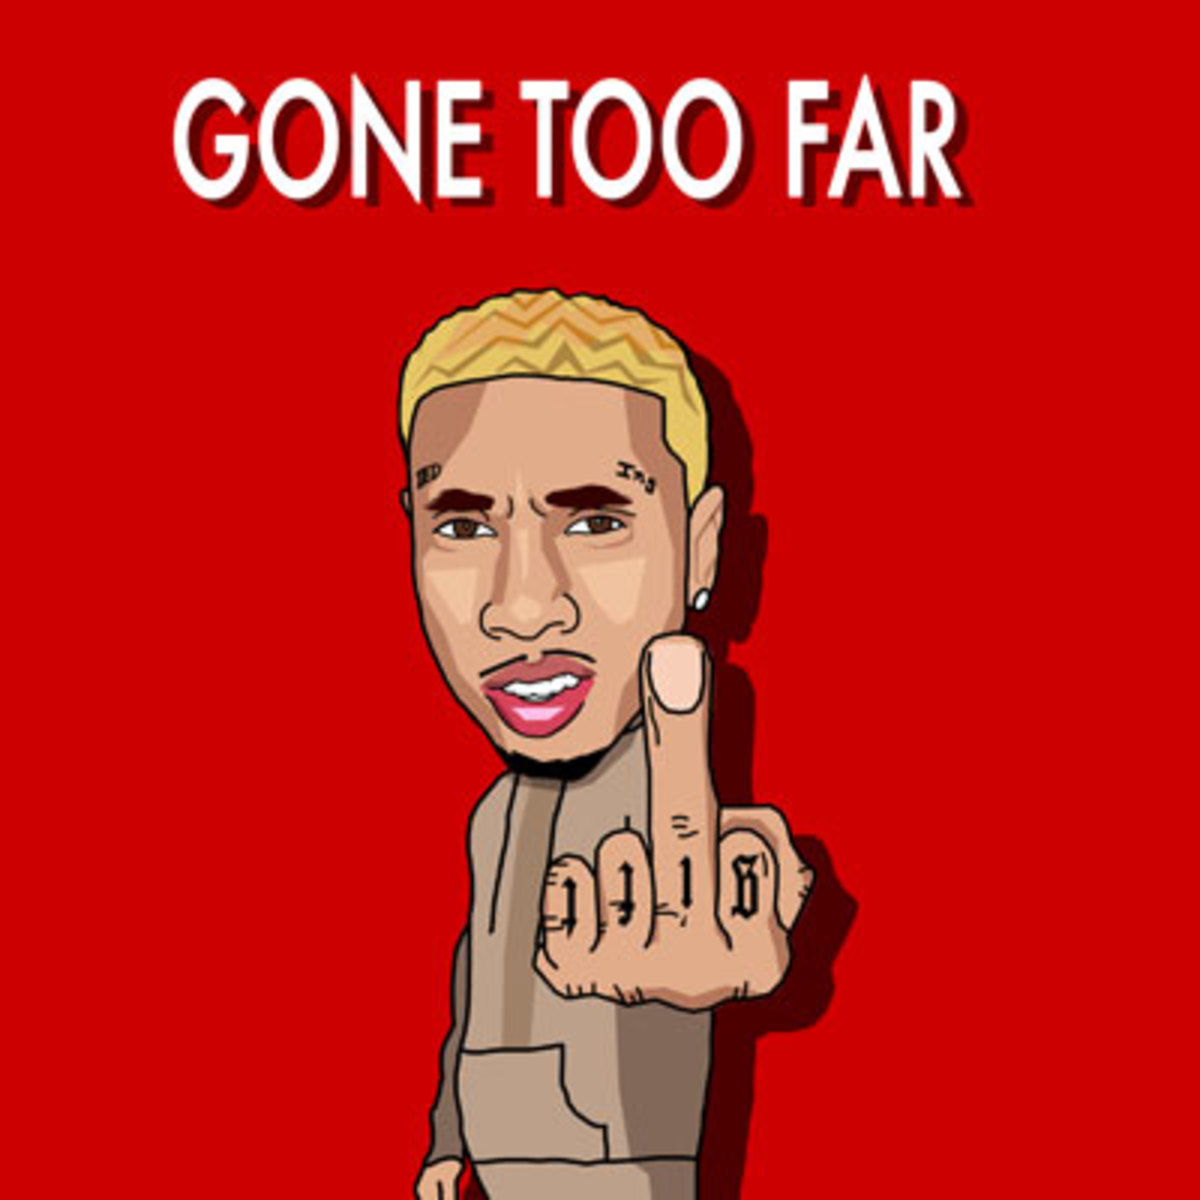 tyga-gone-too-far.jpg